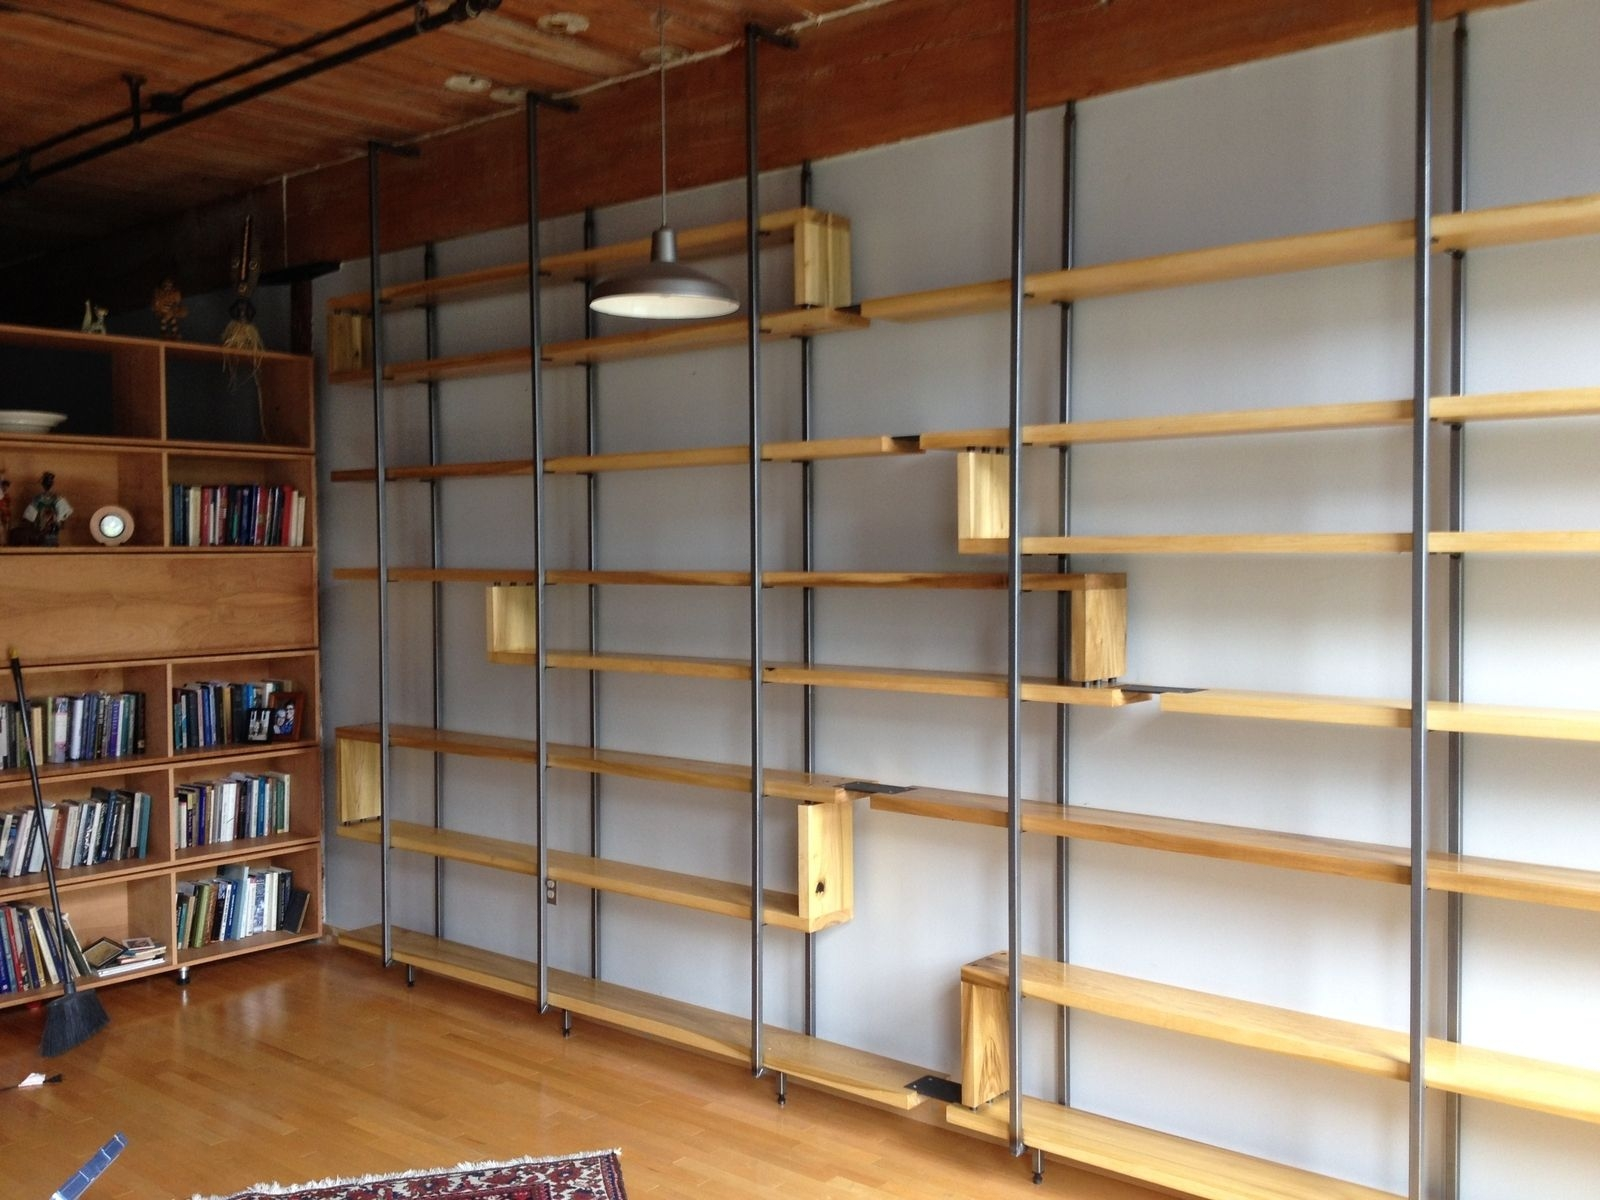 Handmade Wood And Steel Floating Book Shelves Object A Pertaining To Handmade Bookcases (#12 of 15)